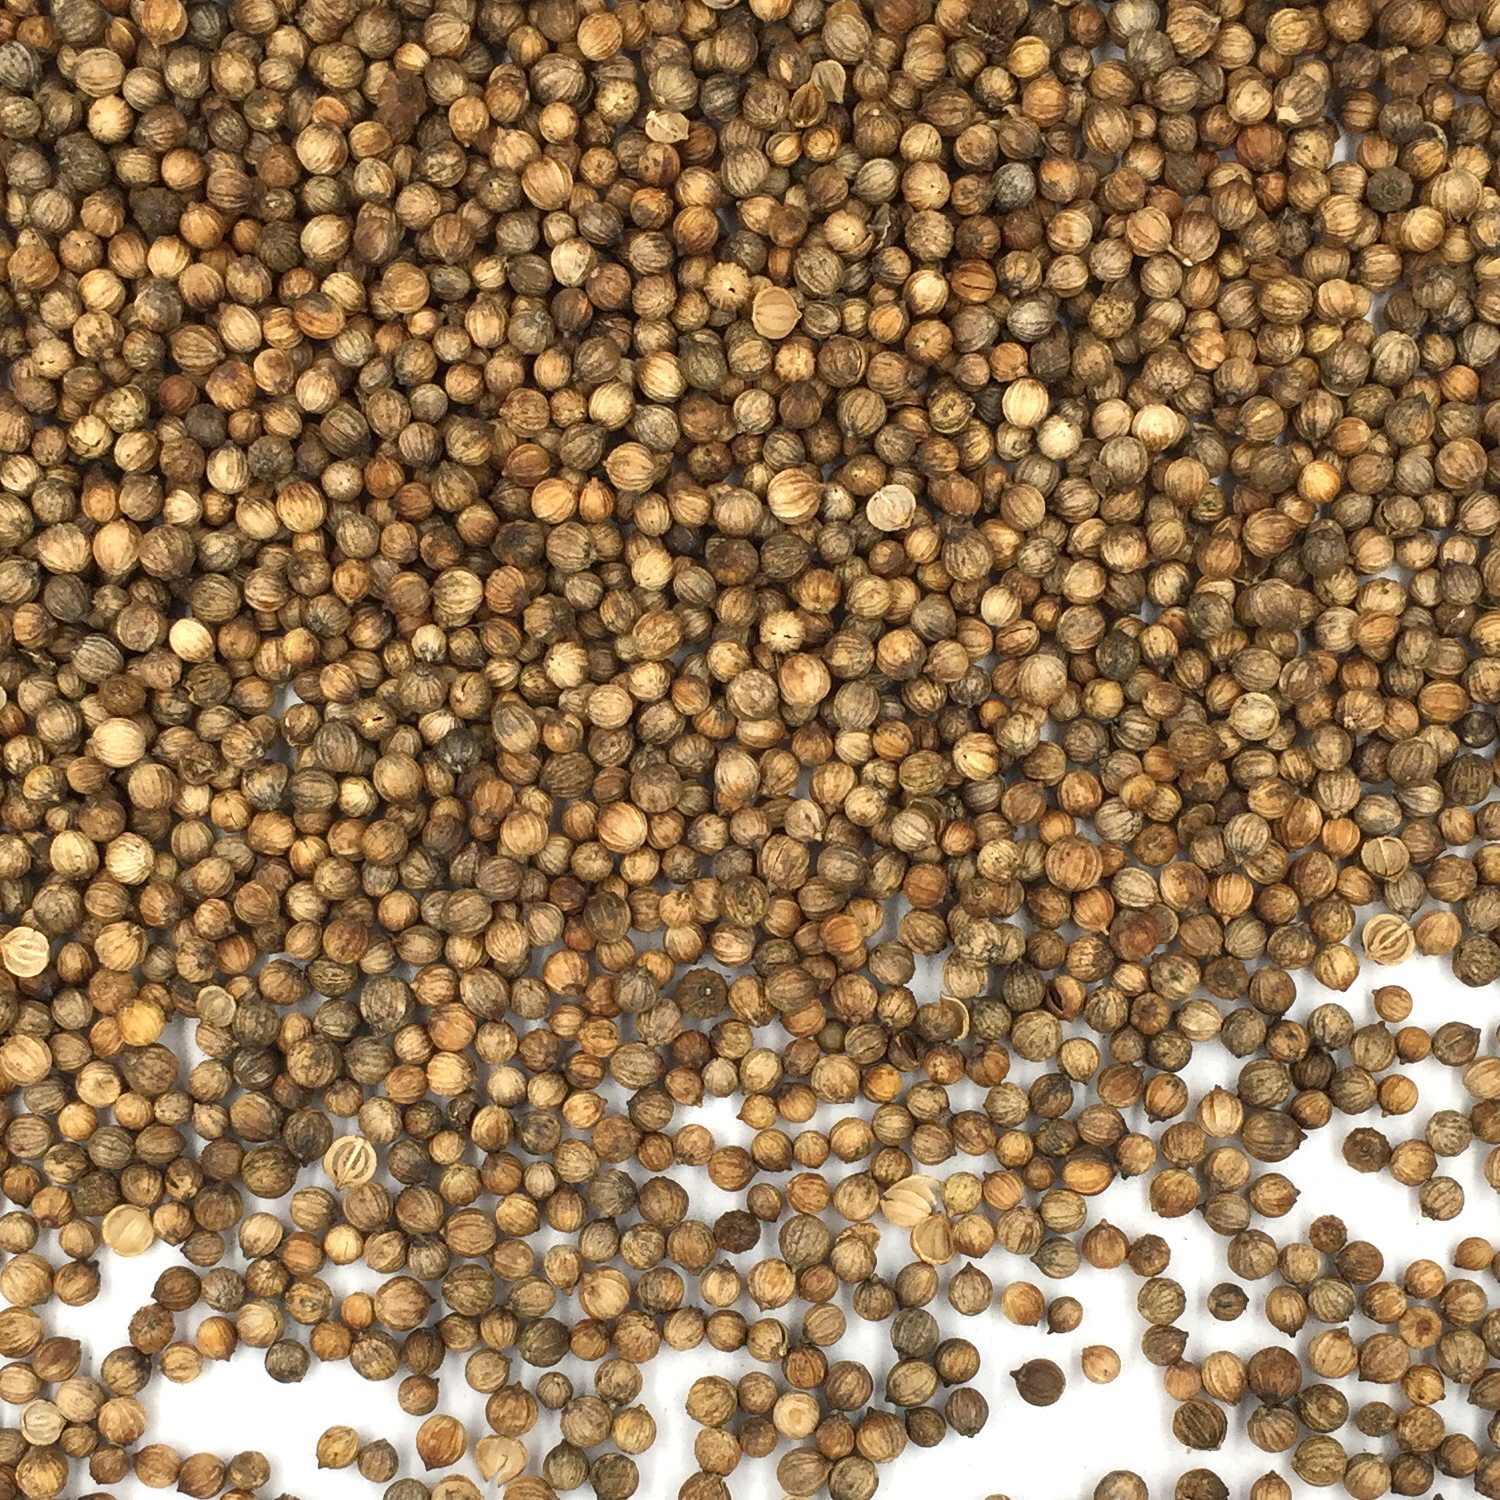 Coriander Seeds (Canada), Whole - 1 Lb